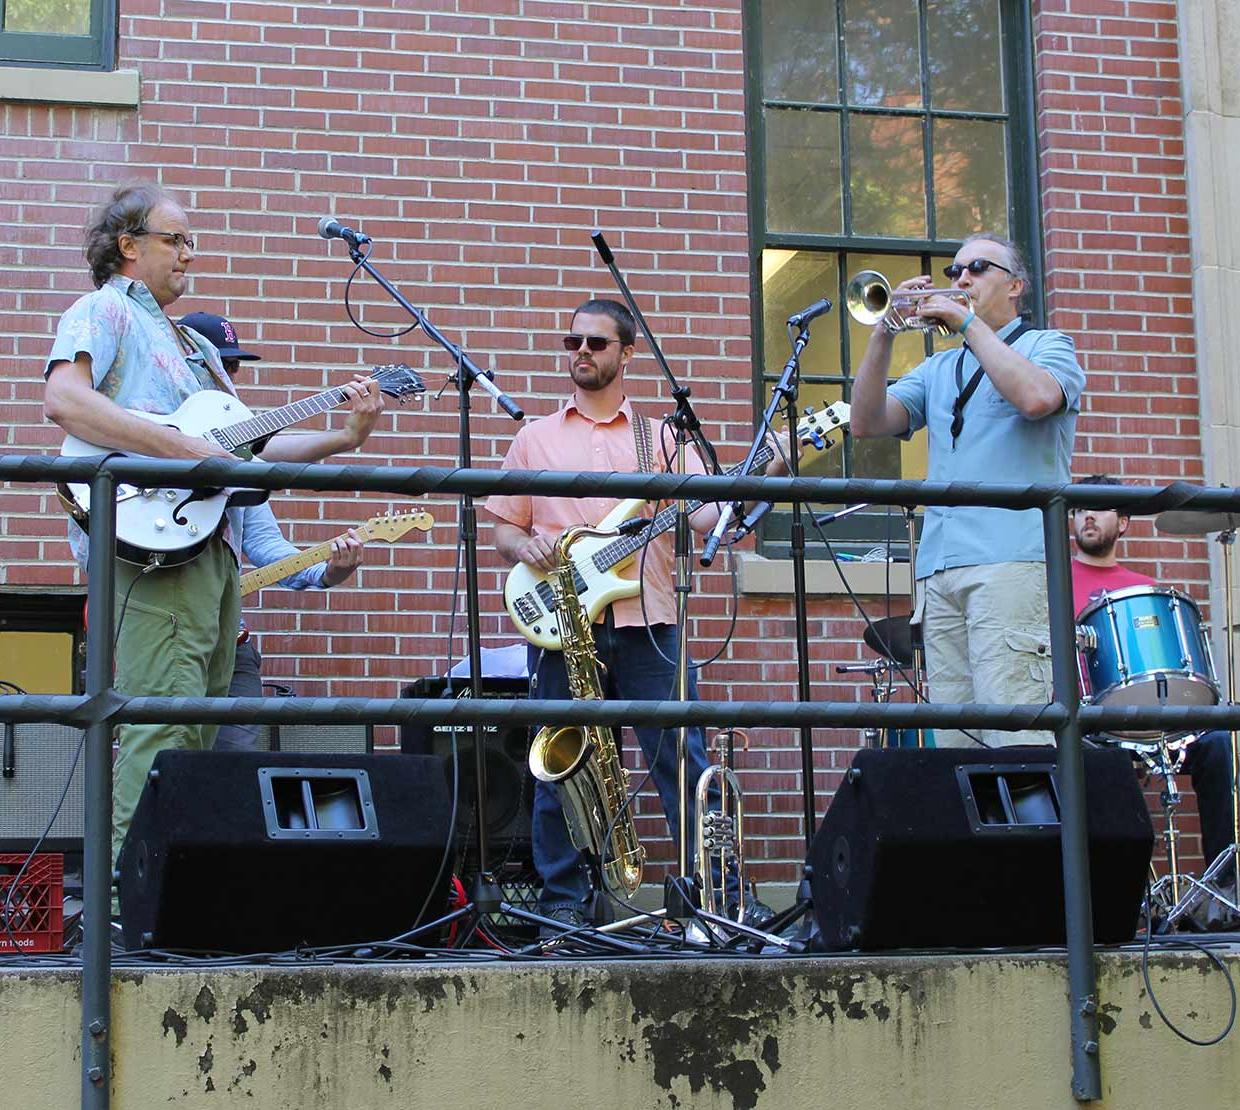 Band playing on outdoor stair set